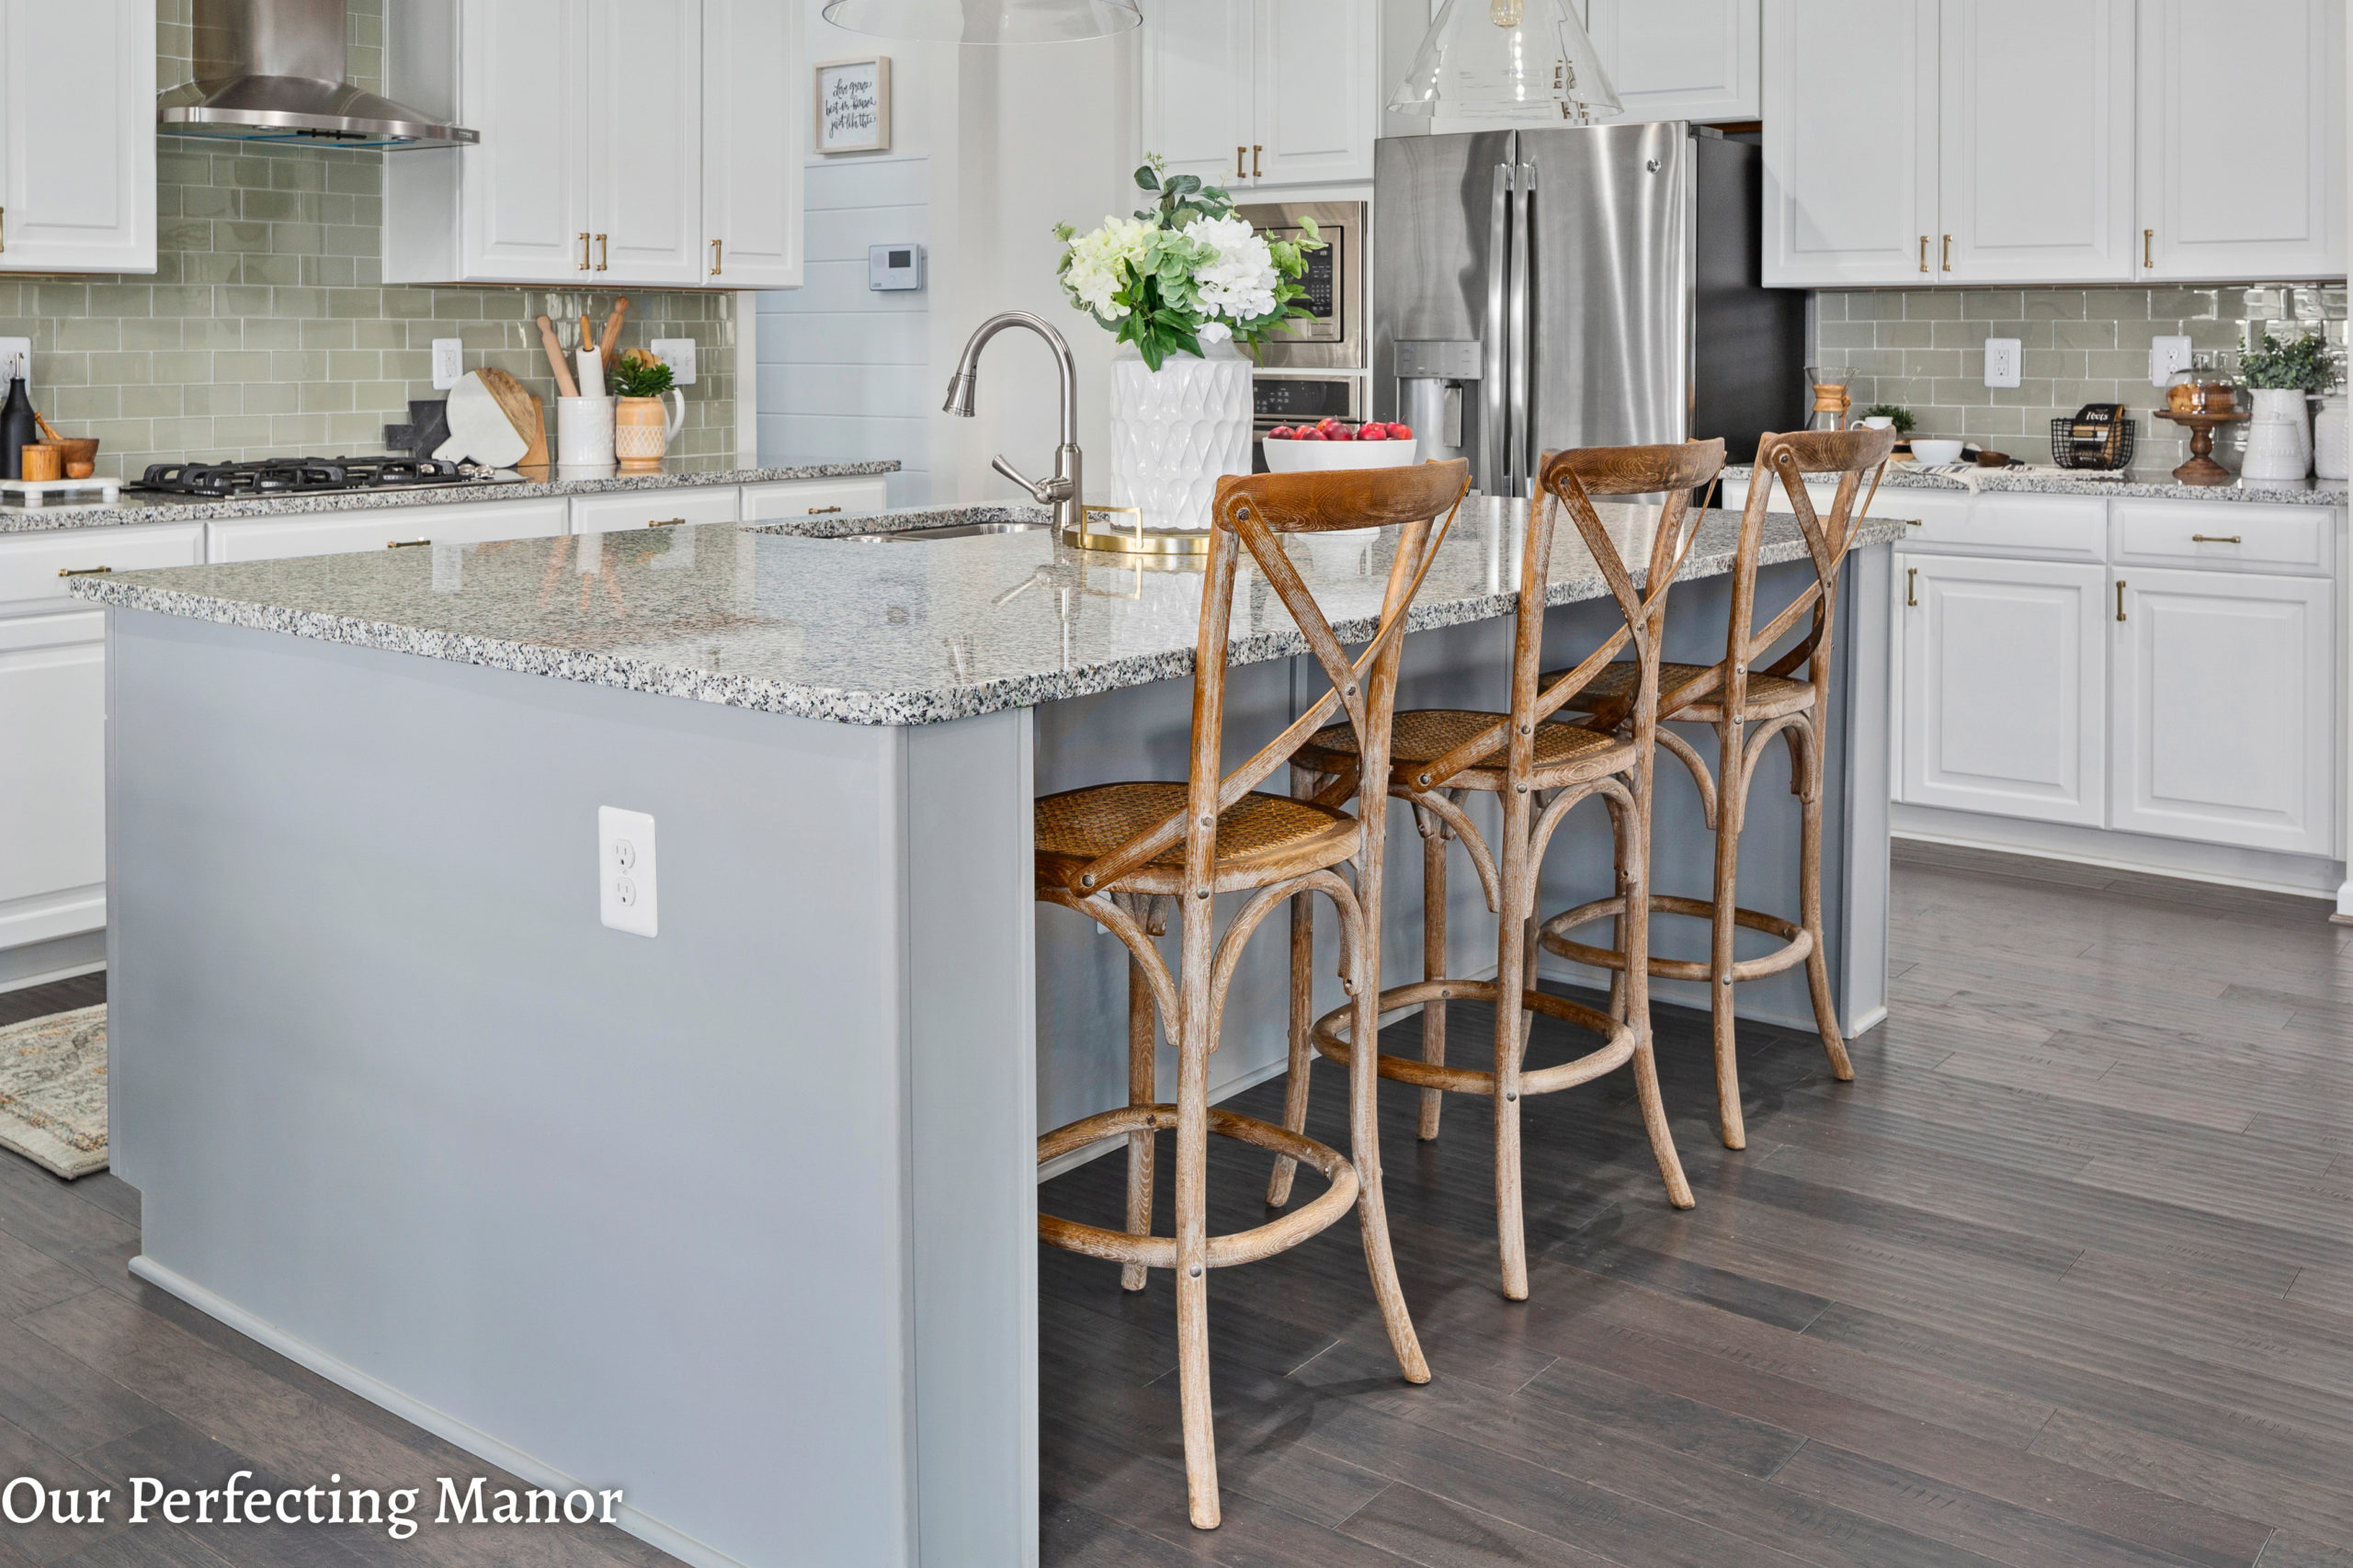 Our Home Our Open Concept Modern Farmhouse Kitchen Our Perfecting Manor